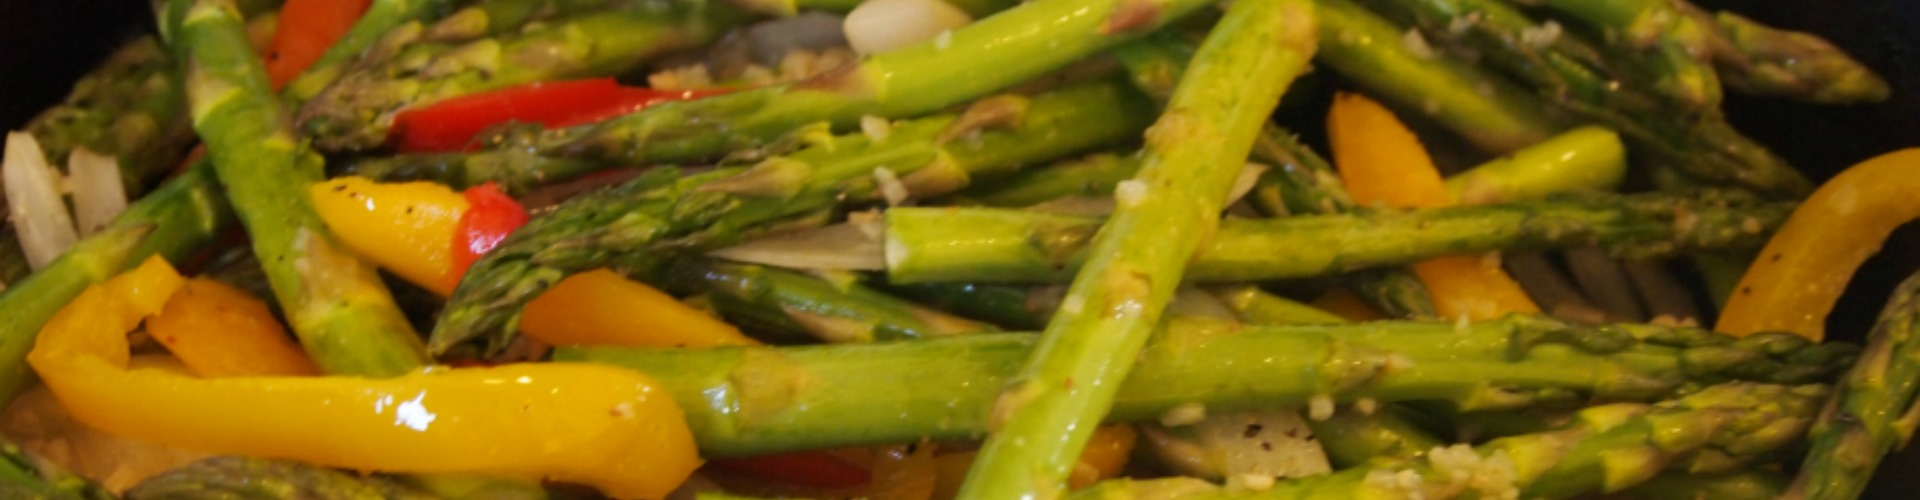 http://www.luscombesfarmshop.co.uk/wp-content/uploads/2015/04/asparagus.jpg